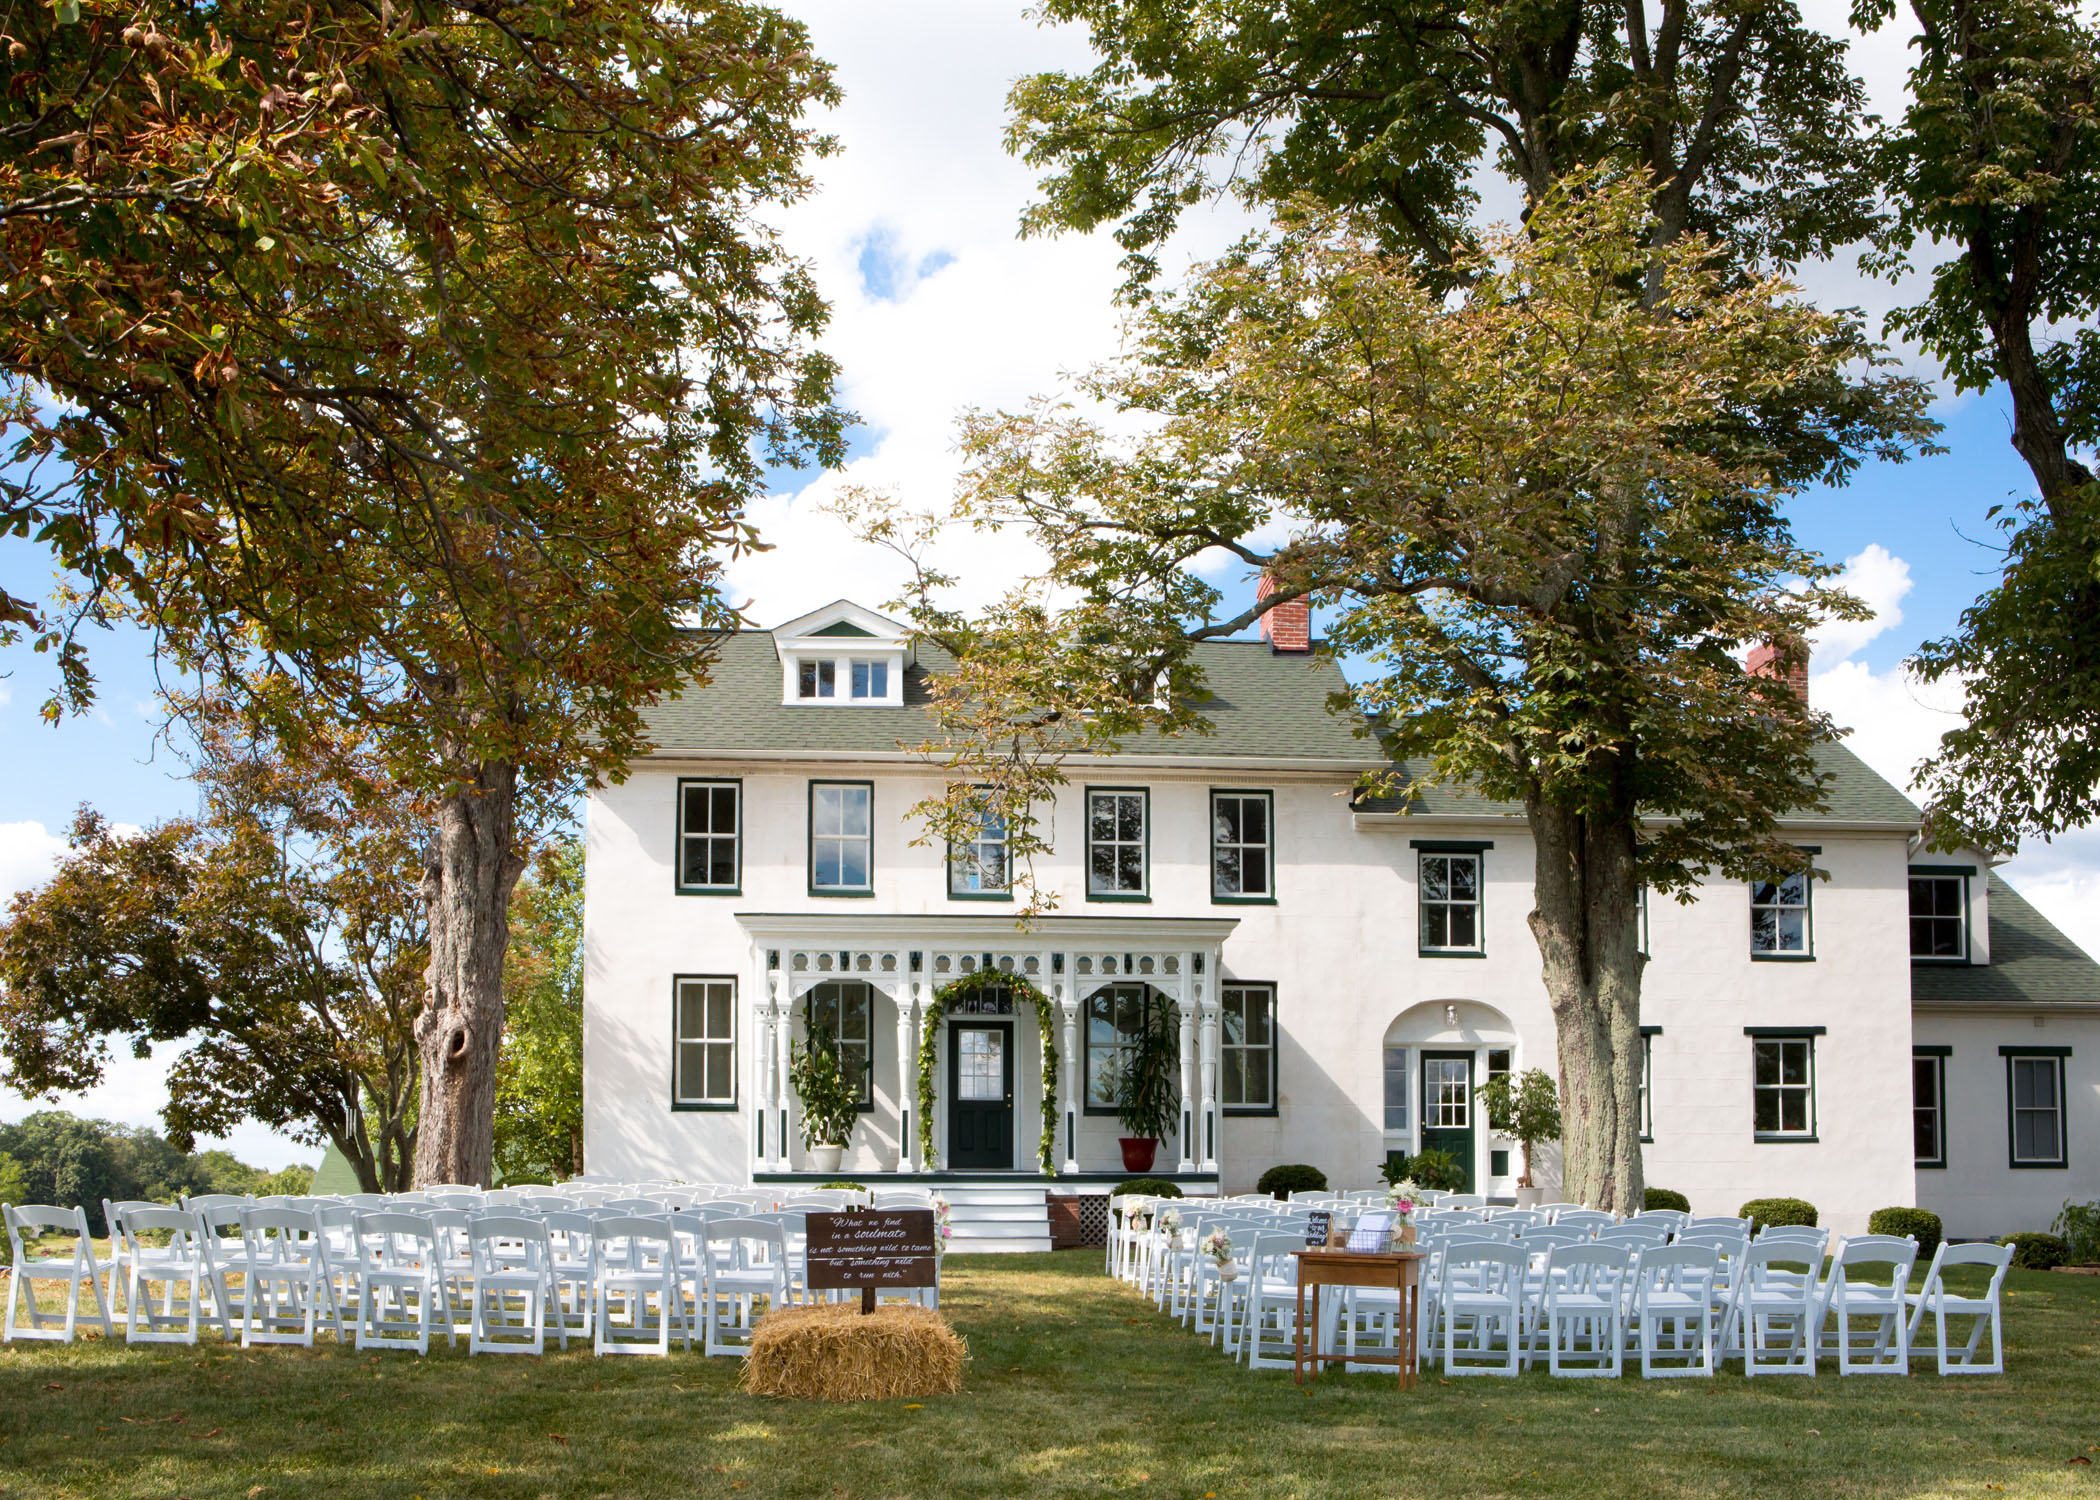 Maryland Wedding Venues | Green Meadows Petting Farm Urbana Md Grand Prairie Tx Dallas